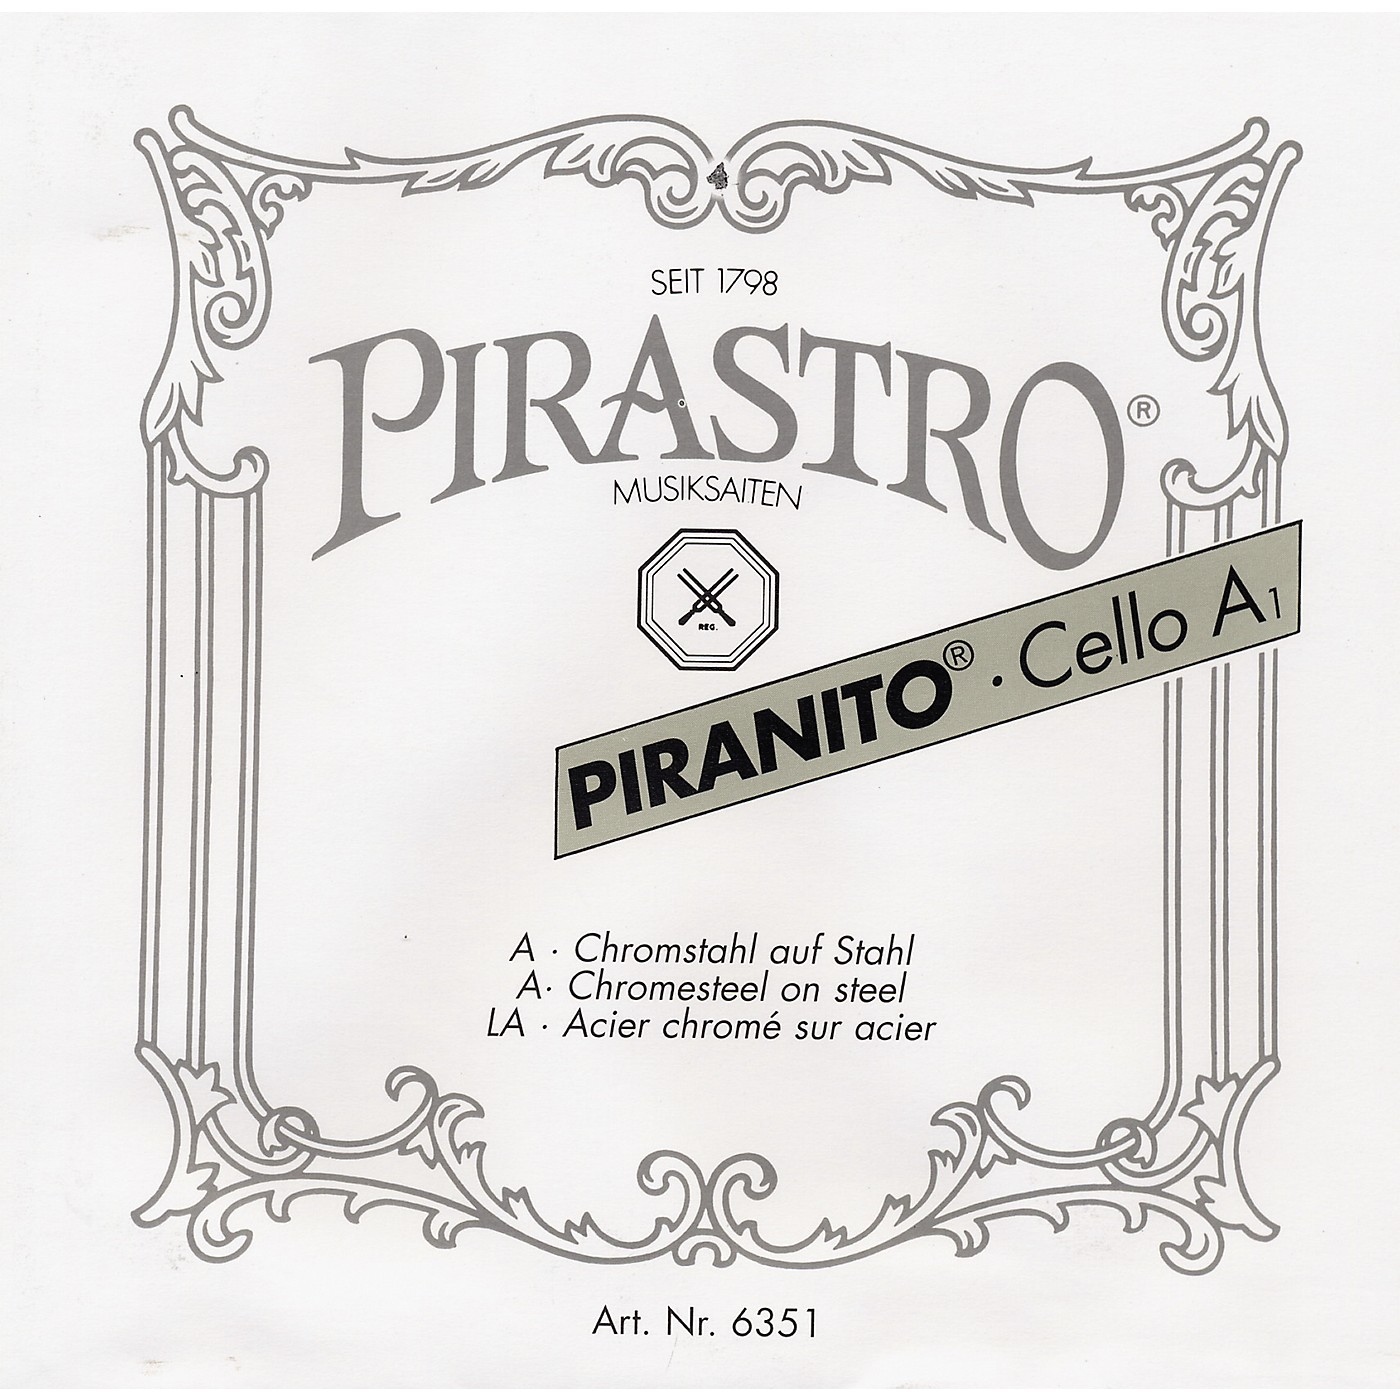 Pirastro Piranito Series Cello String Set thumbnail